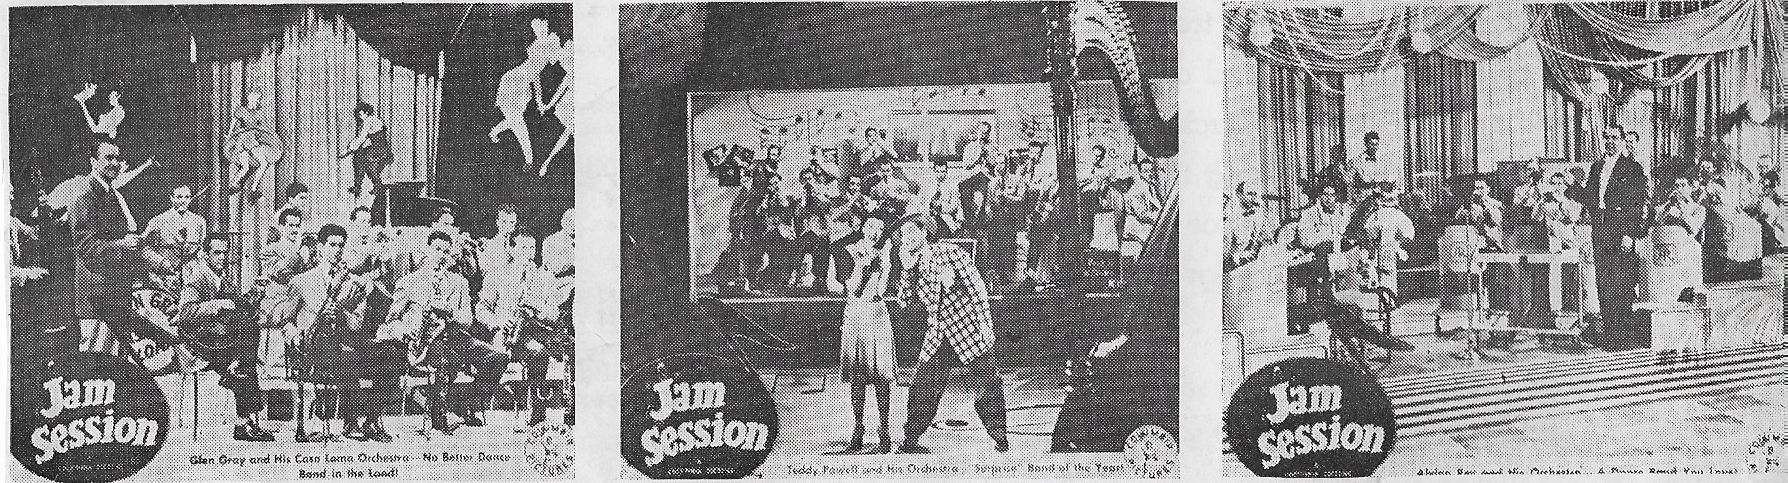 Glen Gray, Teddy Powell, Alvino Rey, Alvino Rey's Orchestra, Glen Gray's Orchestra, and Teddy Powell's Orchestra in Jam Session (1944)